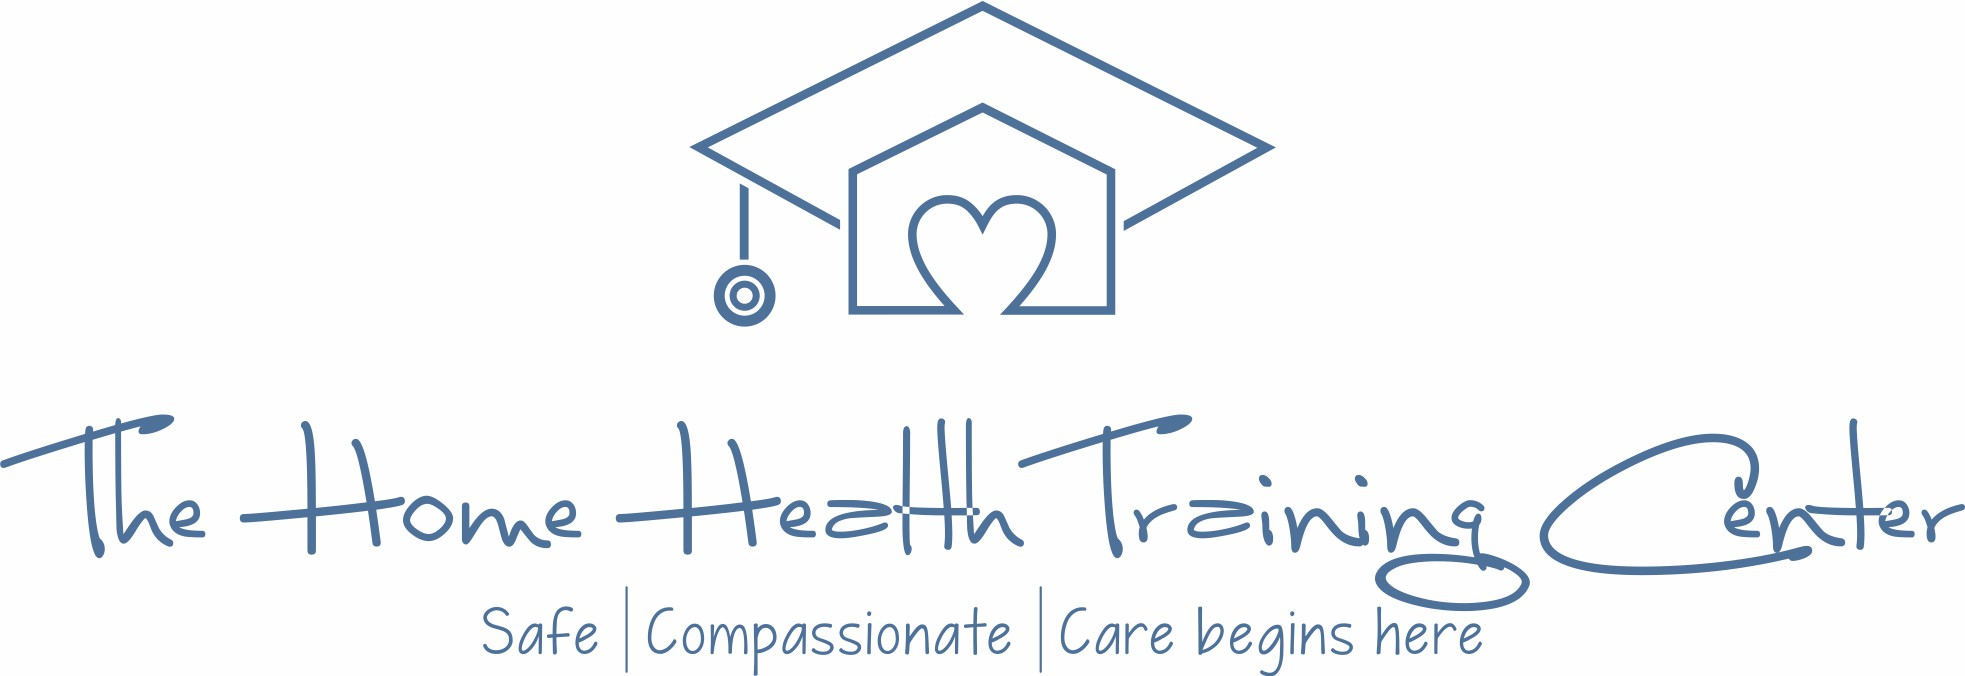 GUARANTEED: Health CareTraining Center needs a logo design that represents our brand